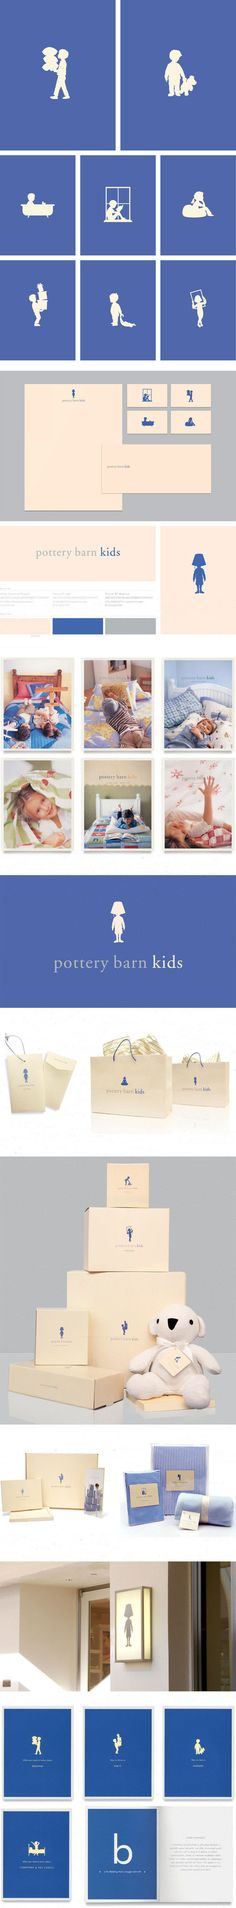 Who doesn't like Pottery Barn? #identity #packaging #branding PD